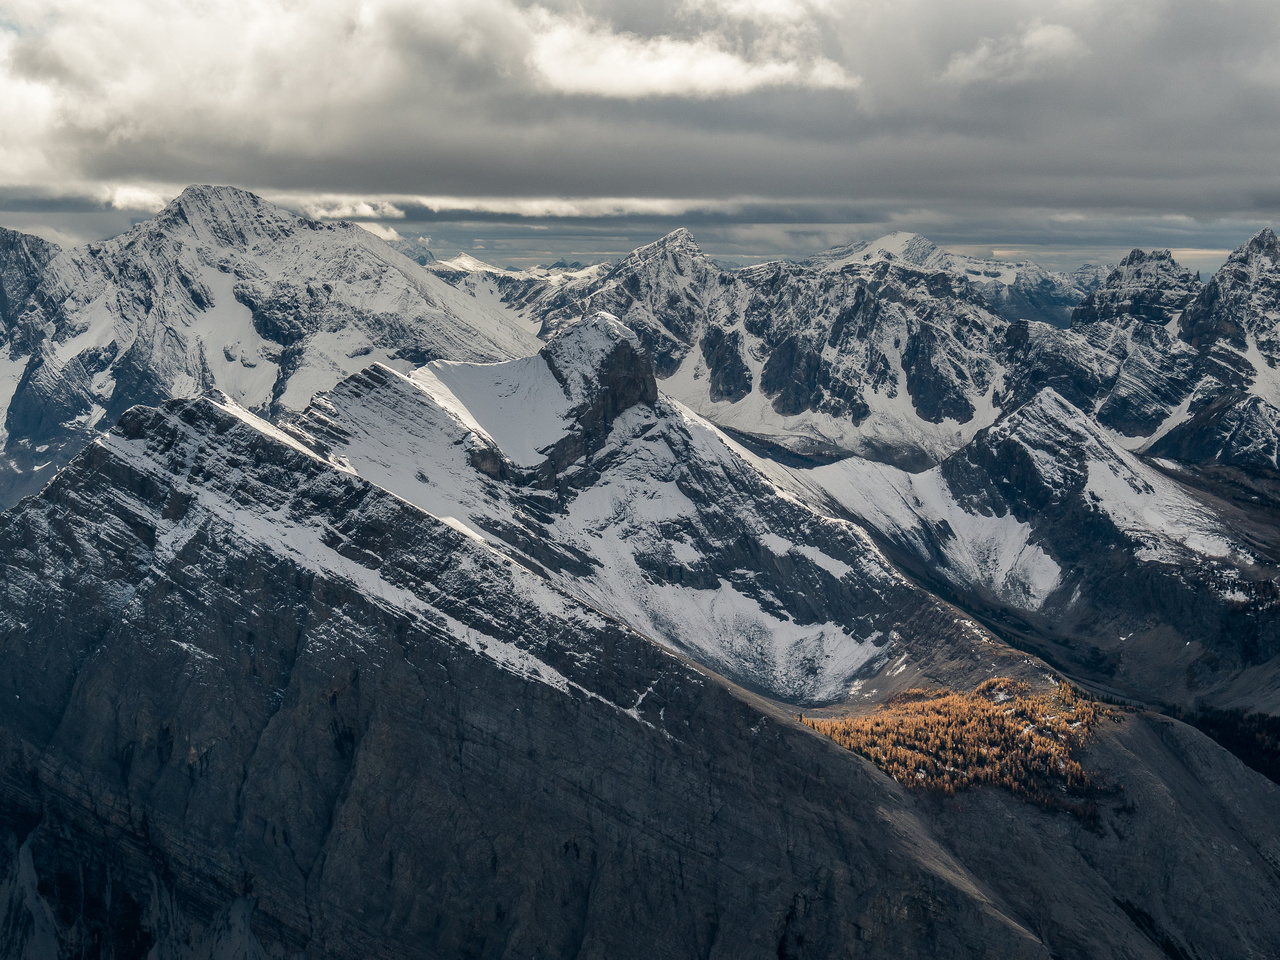 An island of brightly colored larches amongst a sea of grey, foreboding peaks. This is looking over Marvel Peak (C) towards the Blue Range and Mount Currie (L).